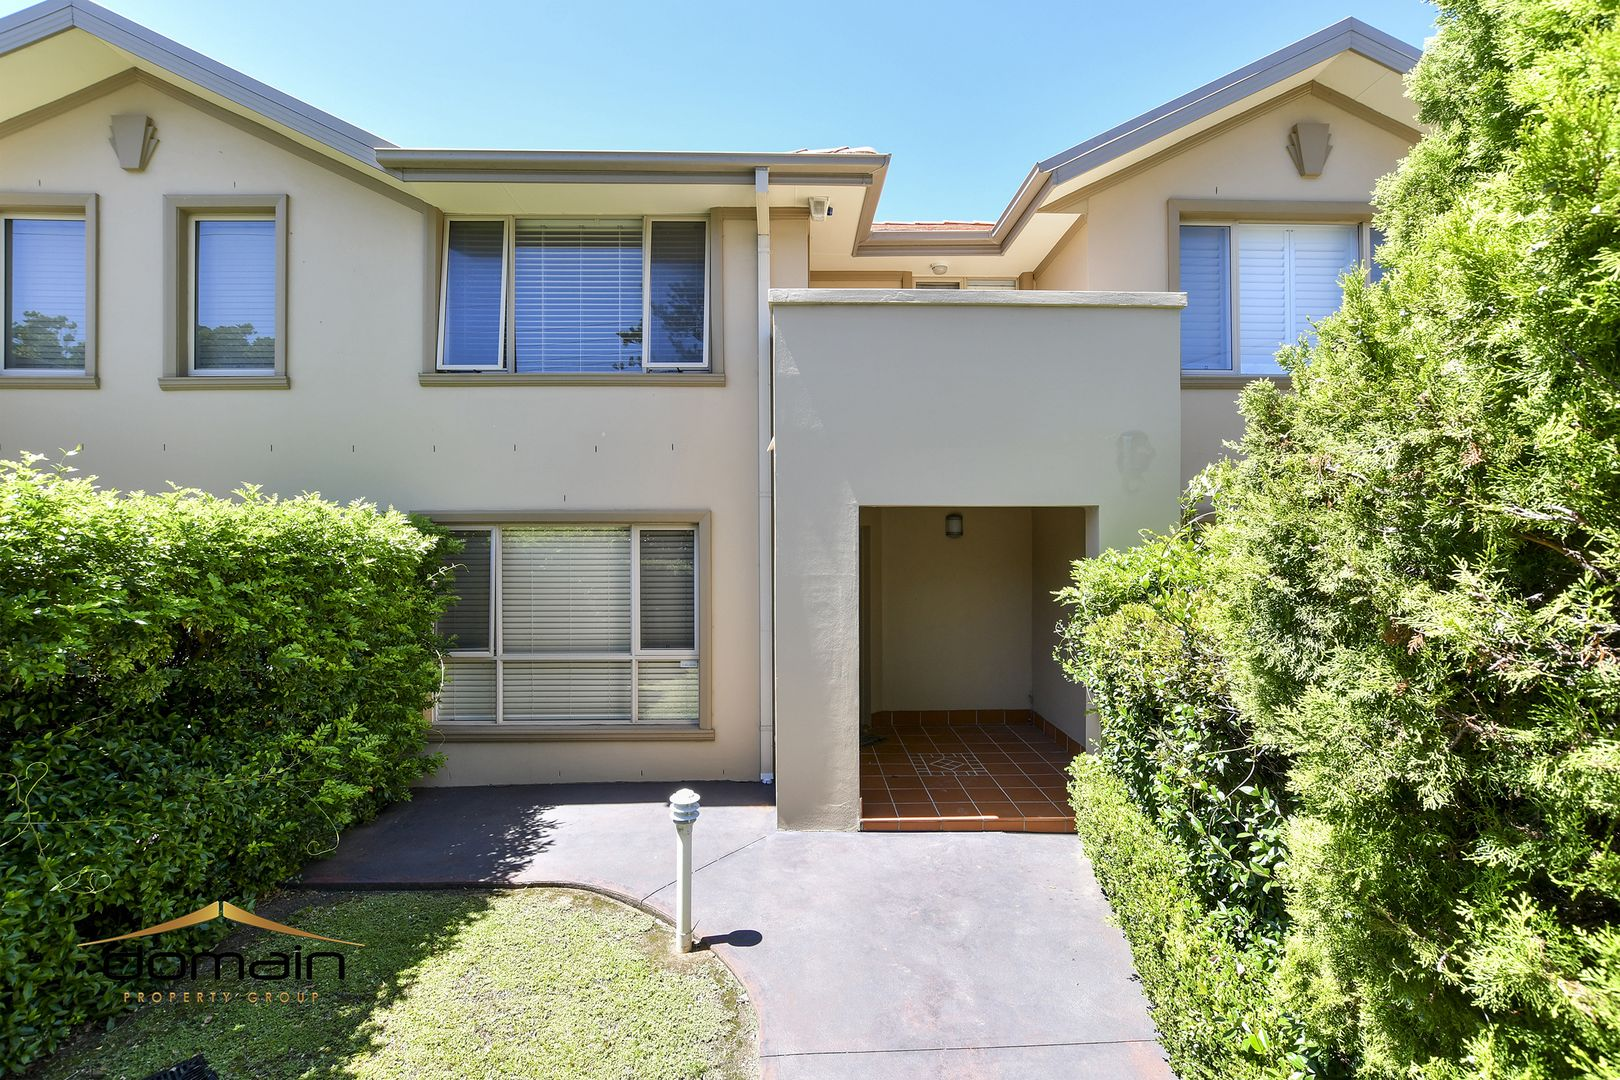 3 20-22 Kurrawyba Avenue, Terrigal NSW 2260, Image 2